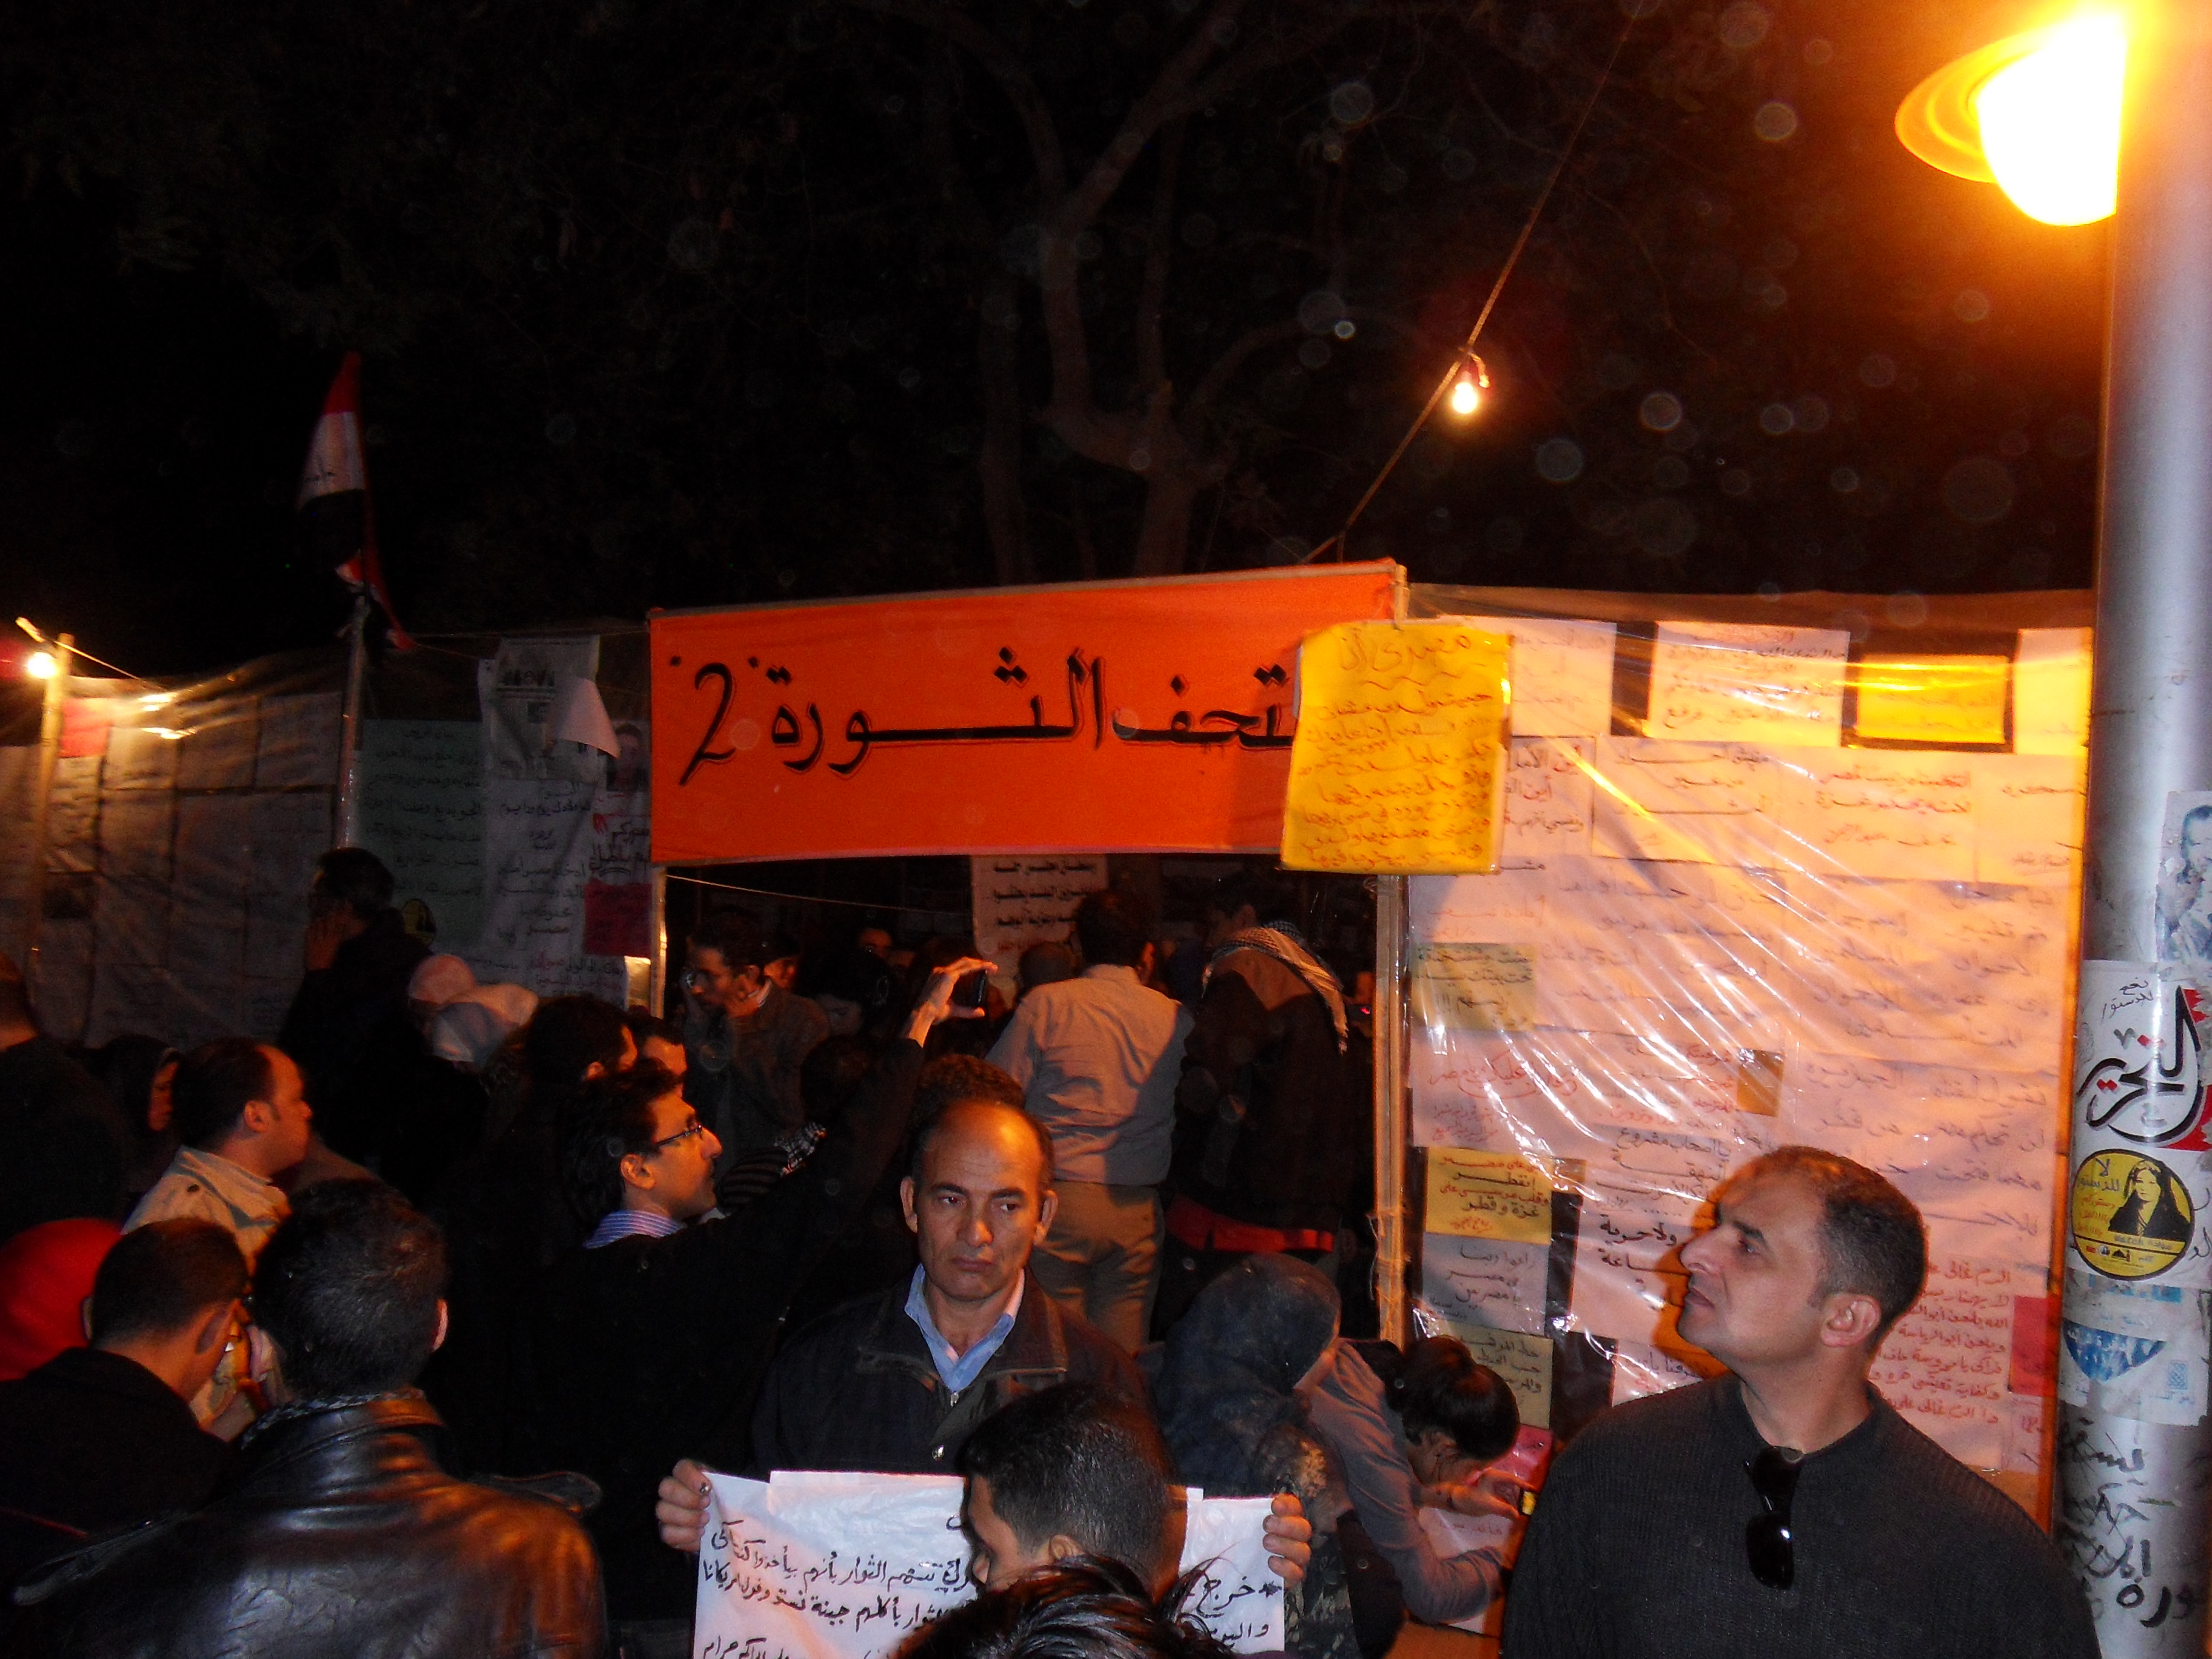 A 'Museum' of the revolution was set up outside the Presidential Palace and attracted large crowds of curious protesters.